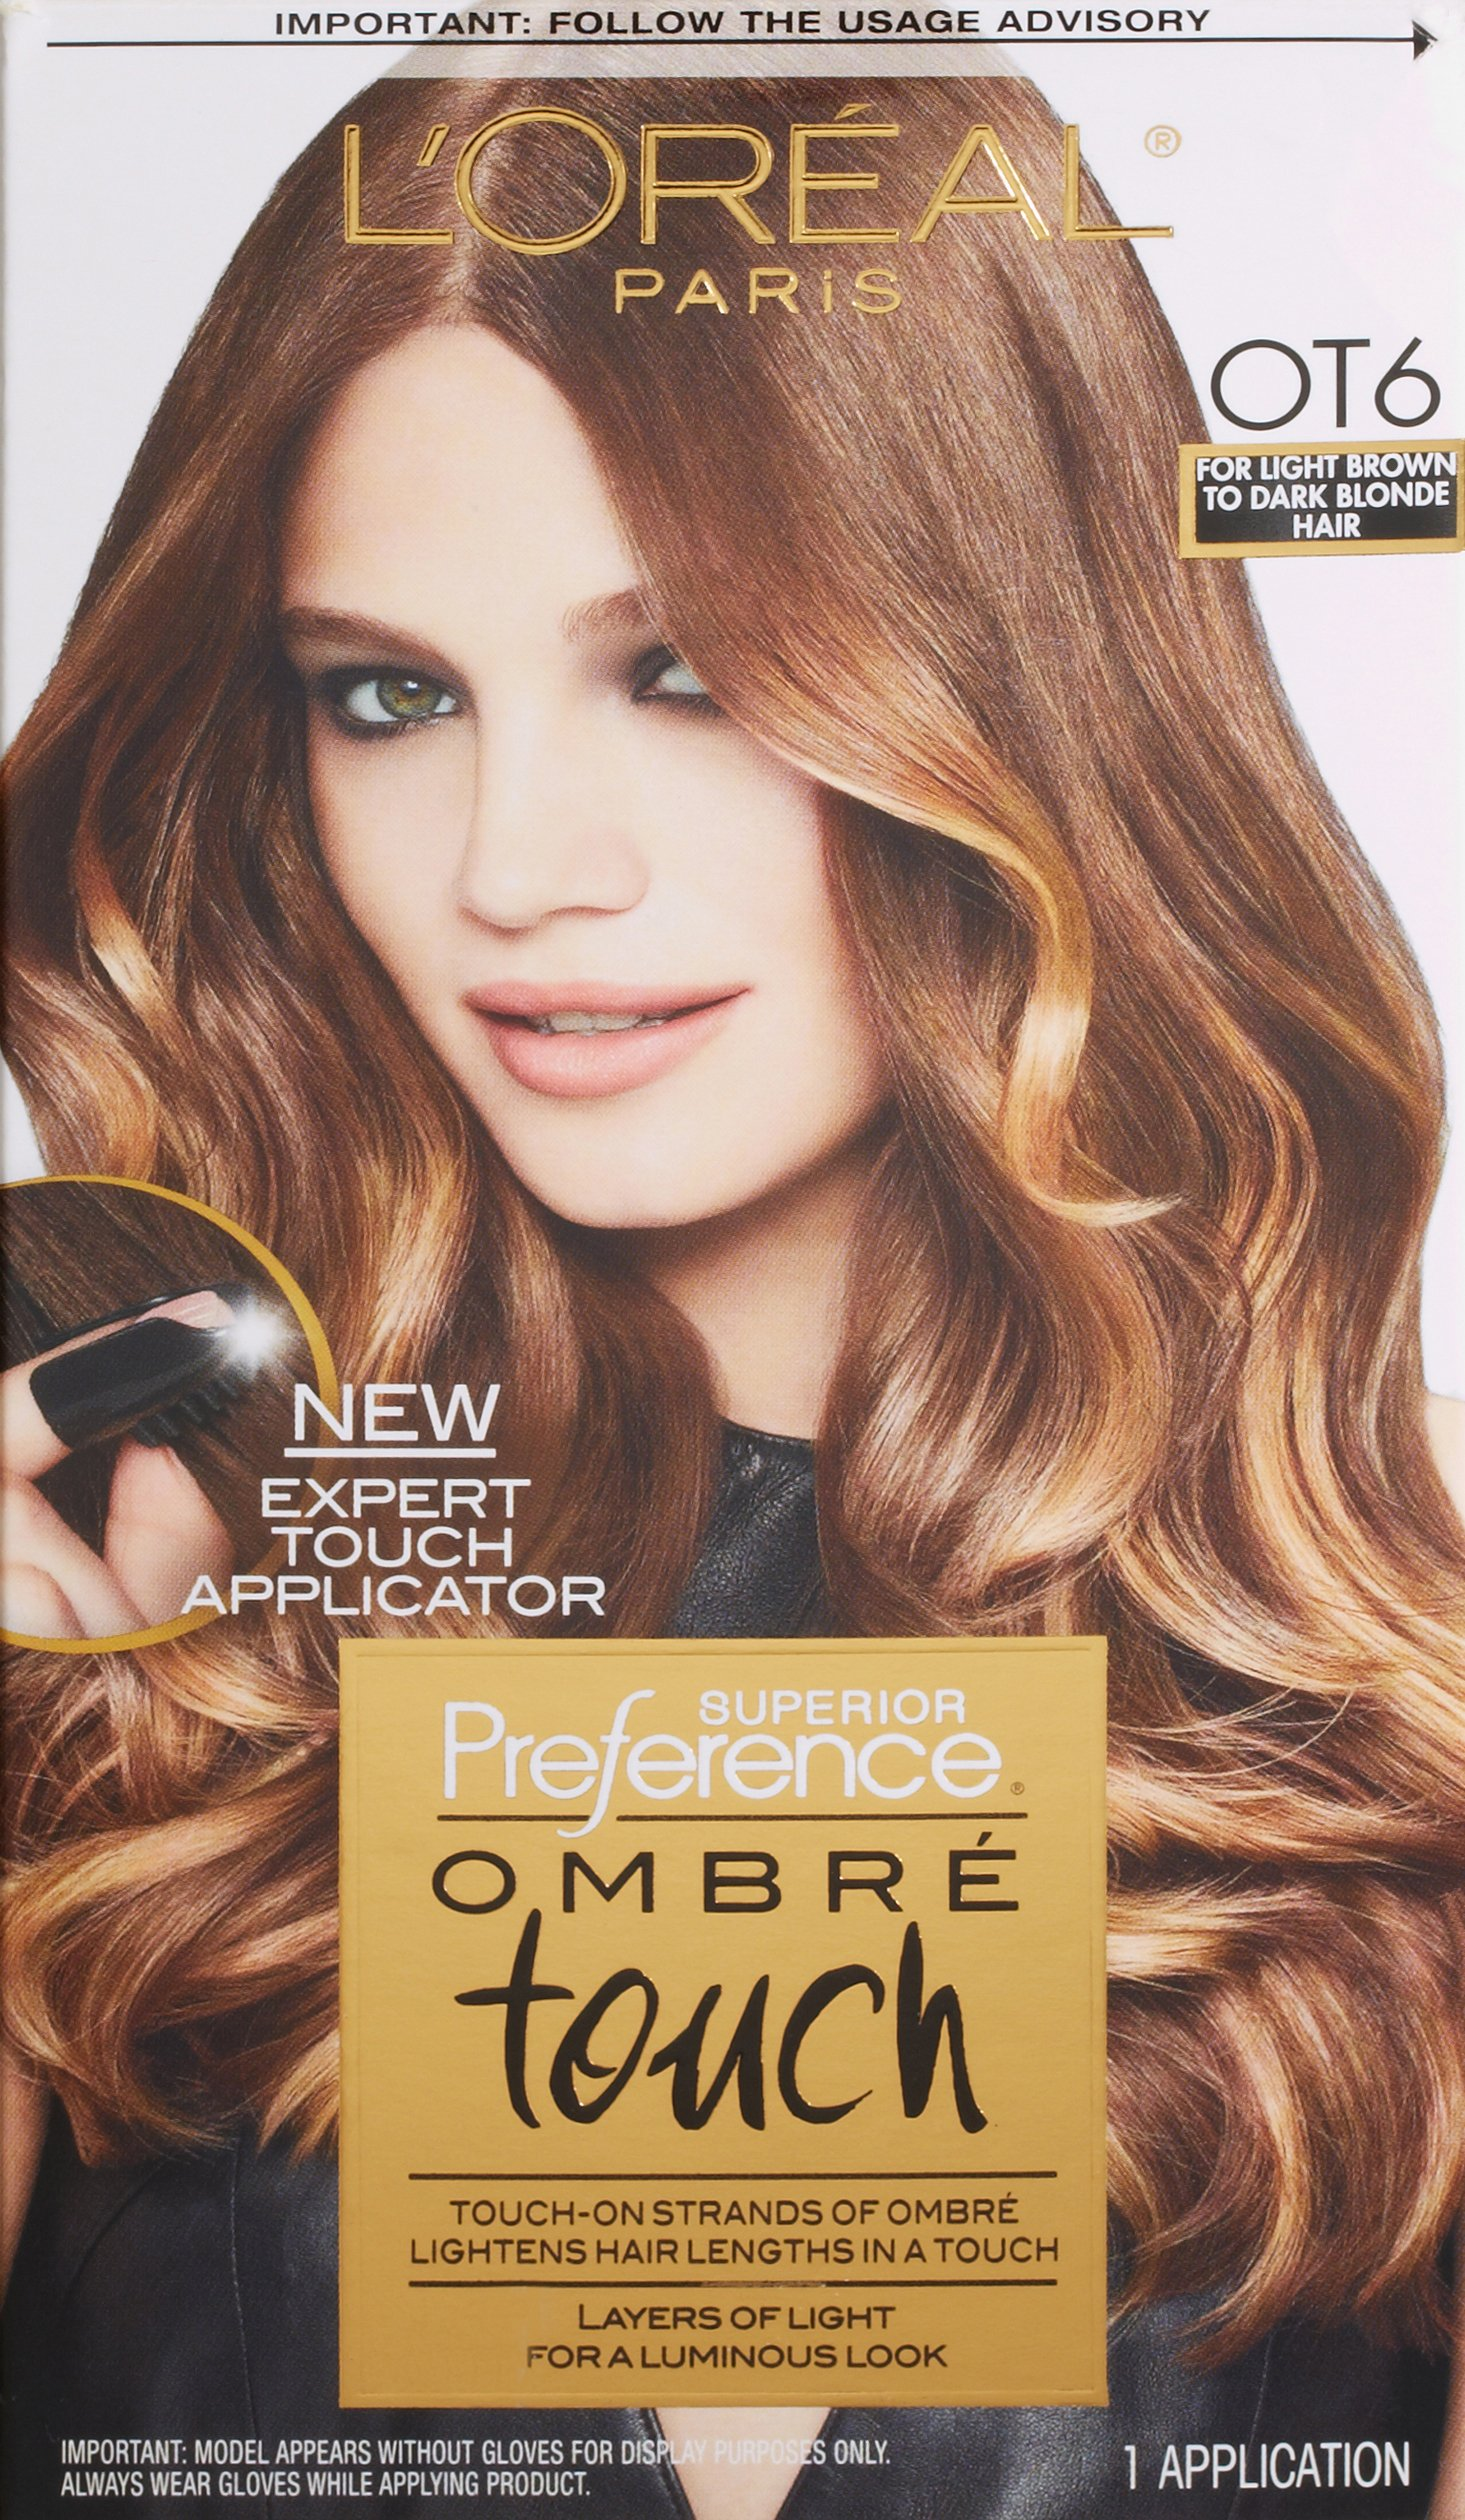 L'Oreal Paris Superior Preference Ombre Touch Hair Color, OT6 Light Brown to Dark Blonde Hair